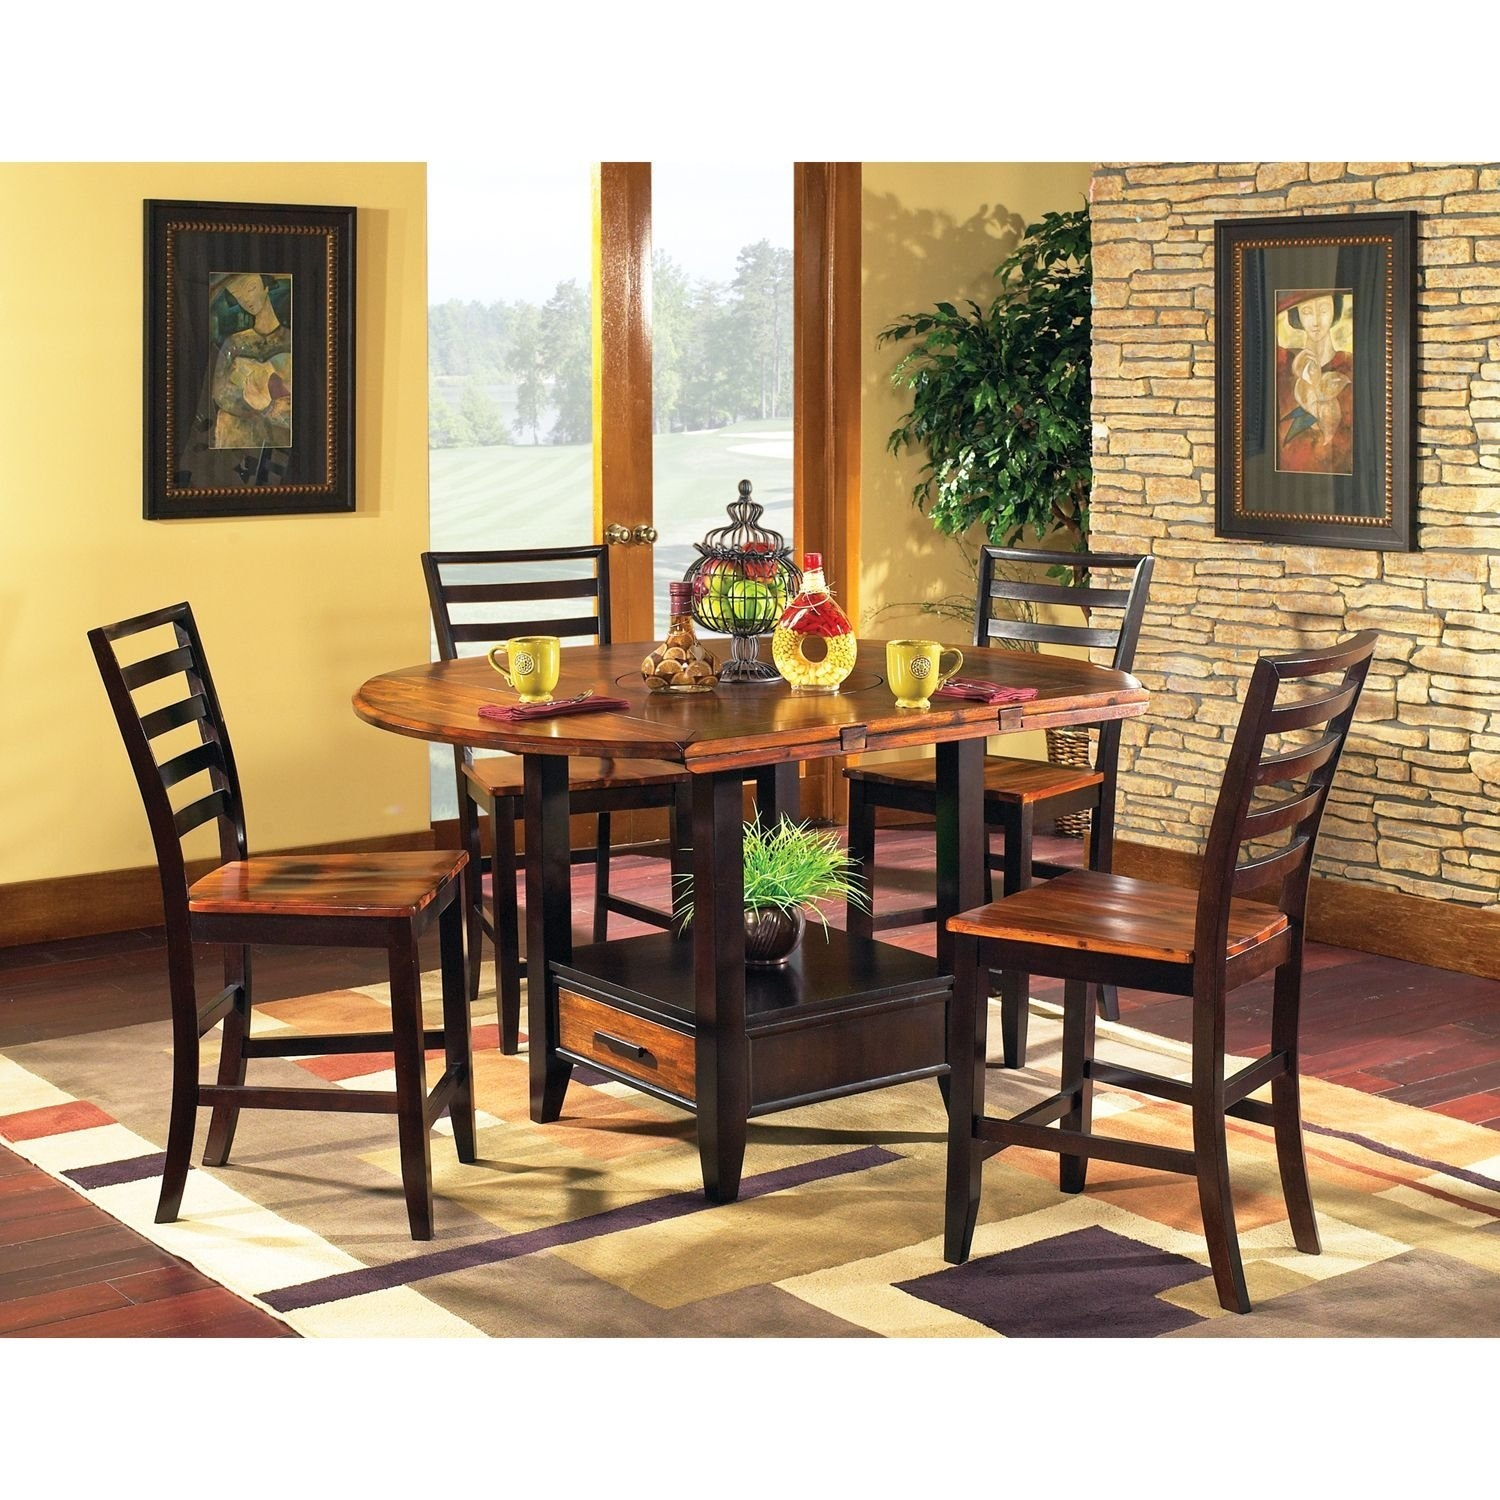 Steve Silver Counter Height Dining Set by Lauren Wells Pi...